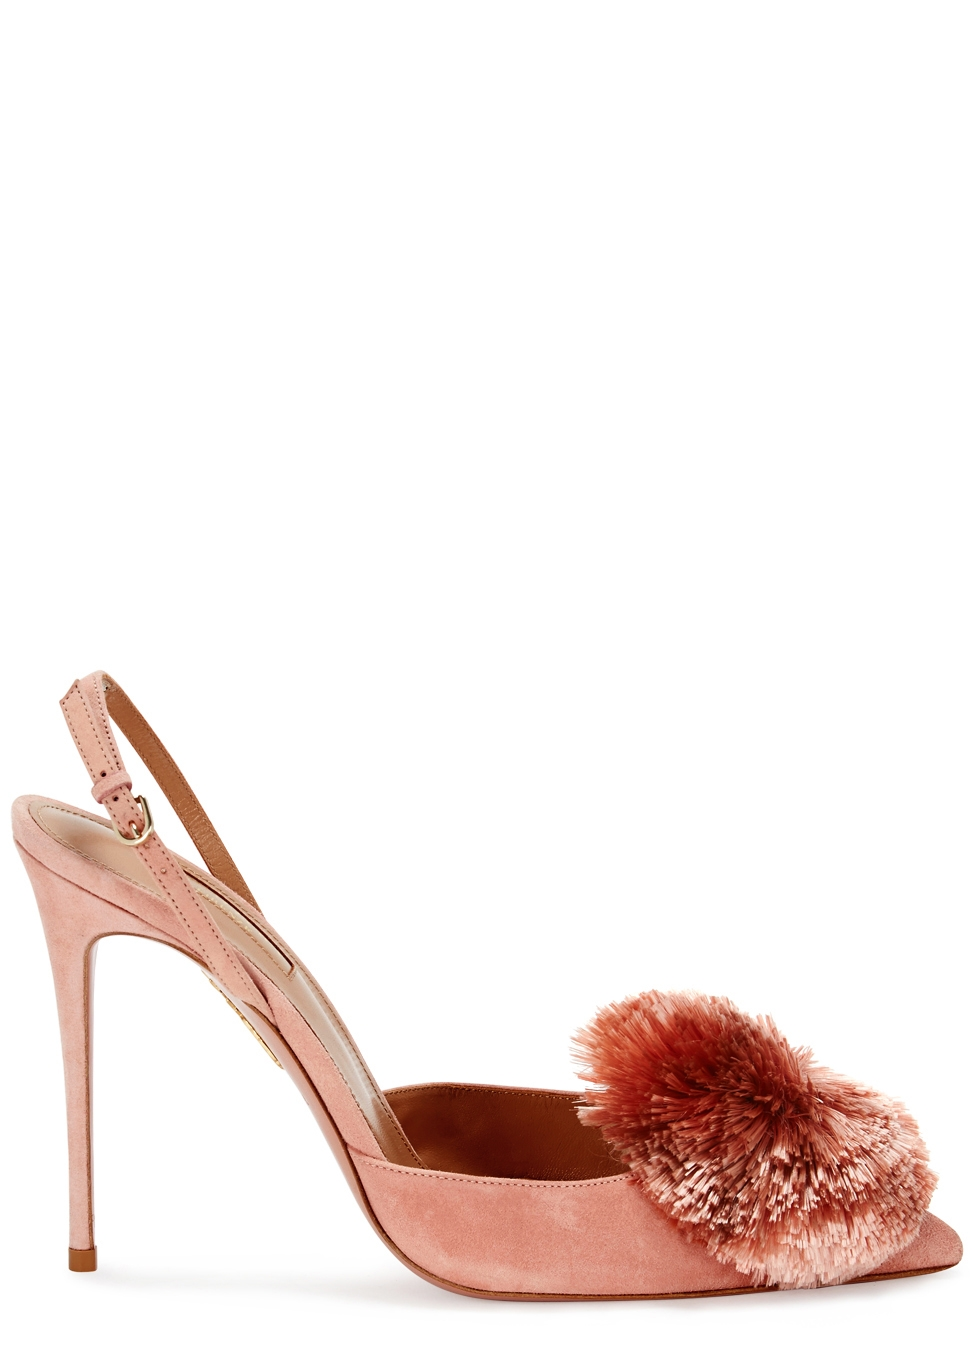 AQUAZZURA POWDER PUFF PEACH SLINGBACK PUMPS